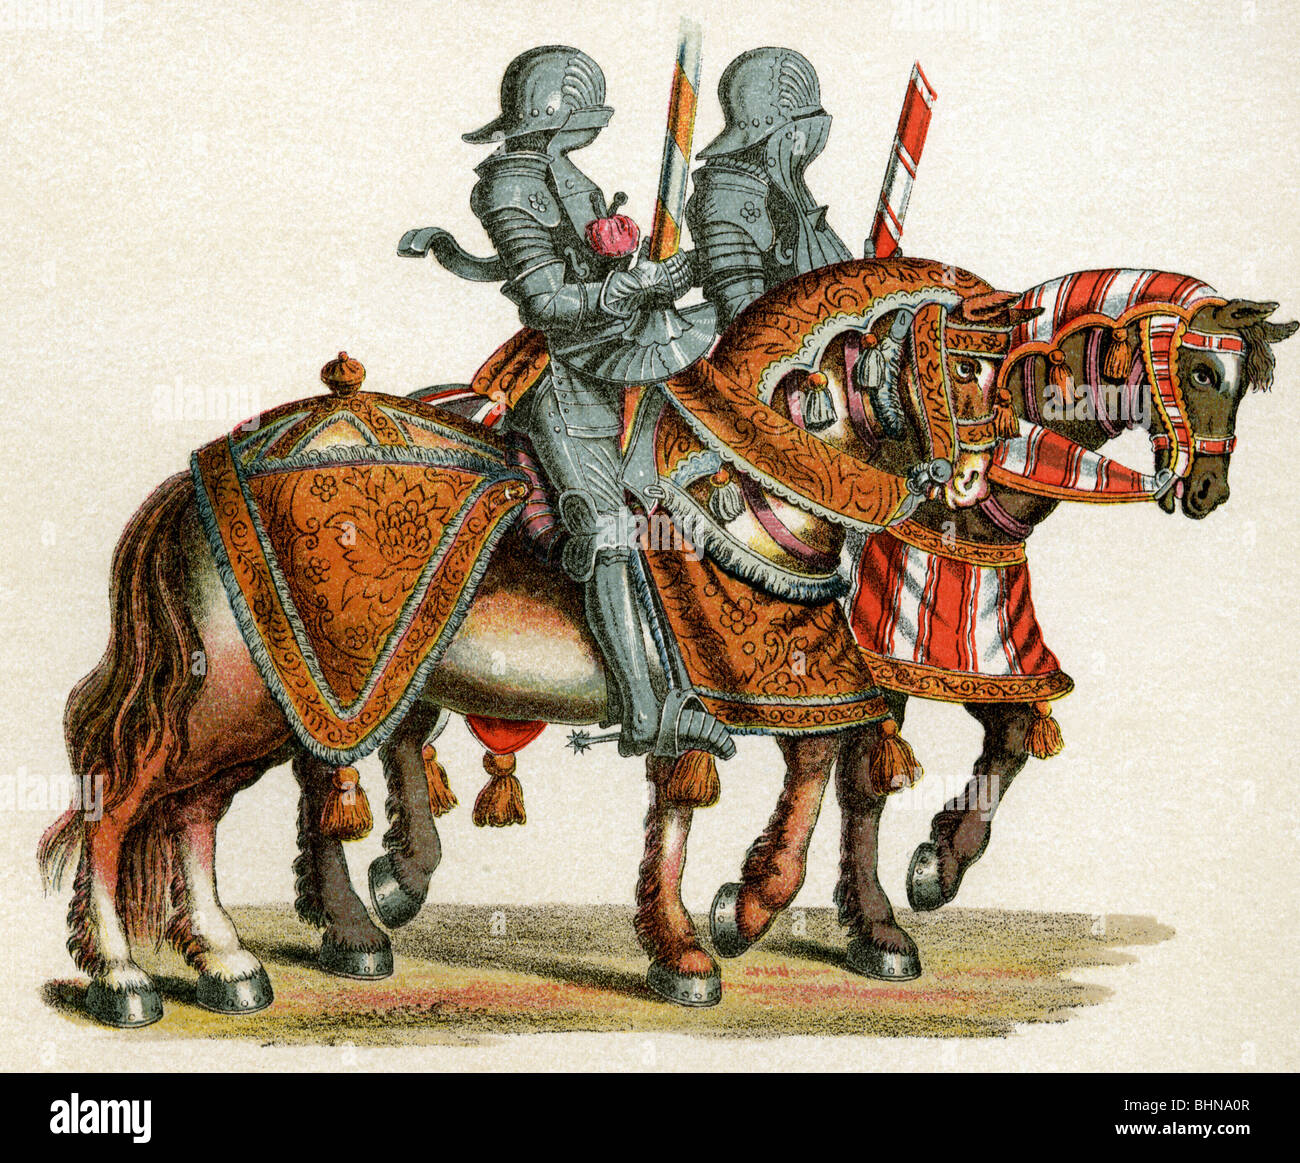 middle ages knights tournament knights stock photos u0026 middle ages